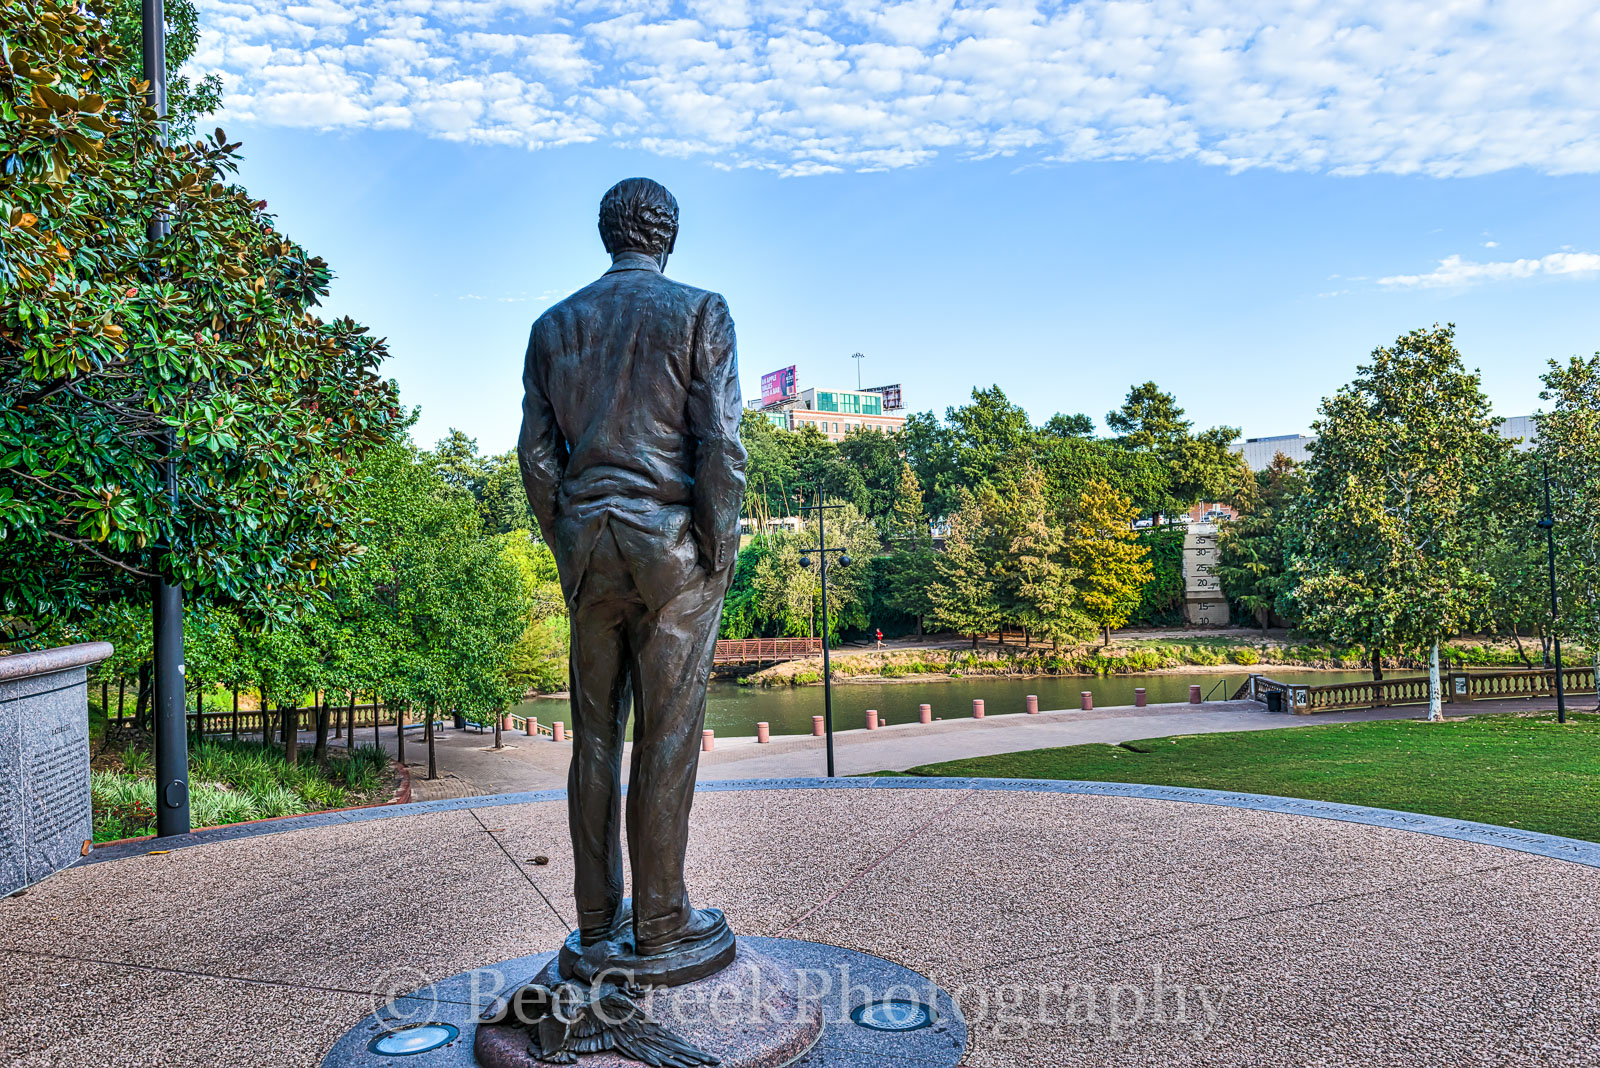 Houston, James Baker Statue, Sesquicentennial park, art district, blue sky, buffalo bayou, city, cityscape, cityscapes, clouds, downtown, landmark, monument, theater district, photo